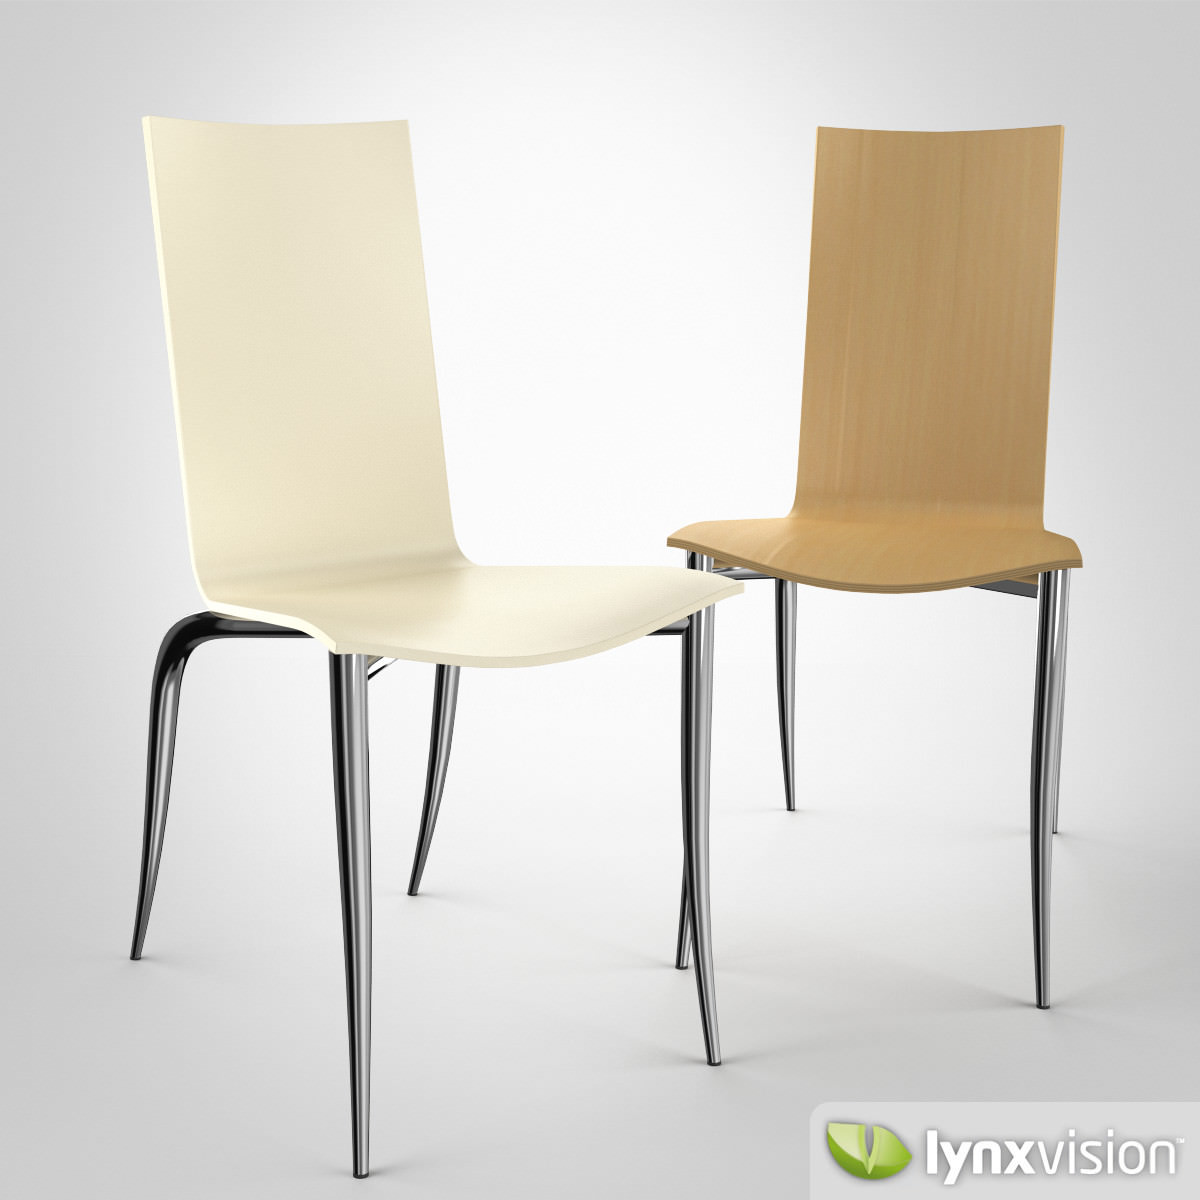 Olly Tango Chair By Starck 3d Model Max Obj Mtl Fbx 1 ...